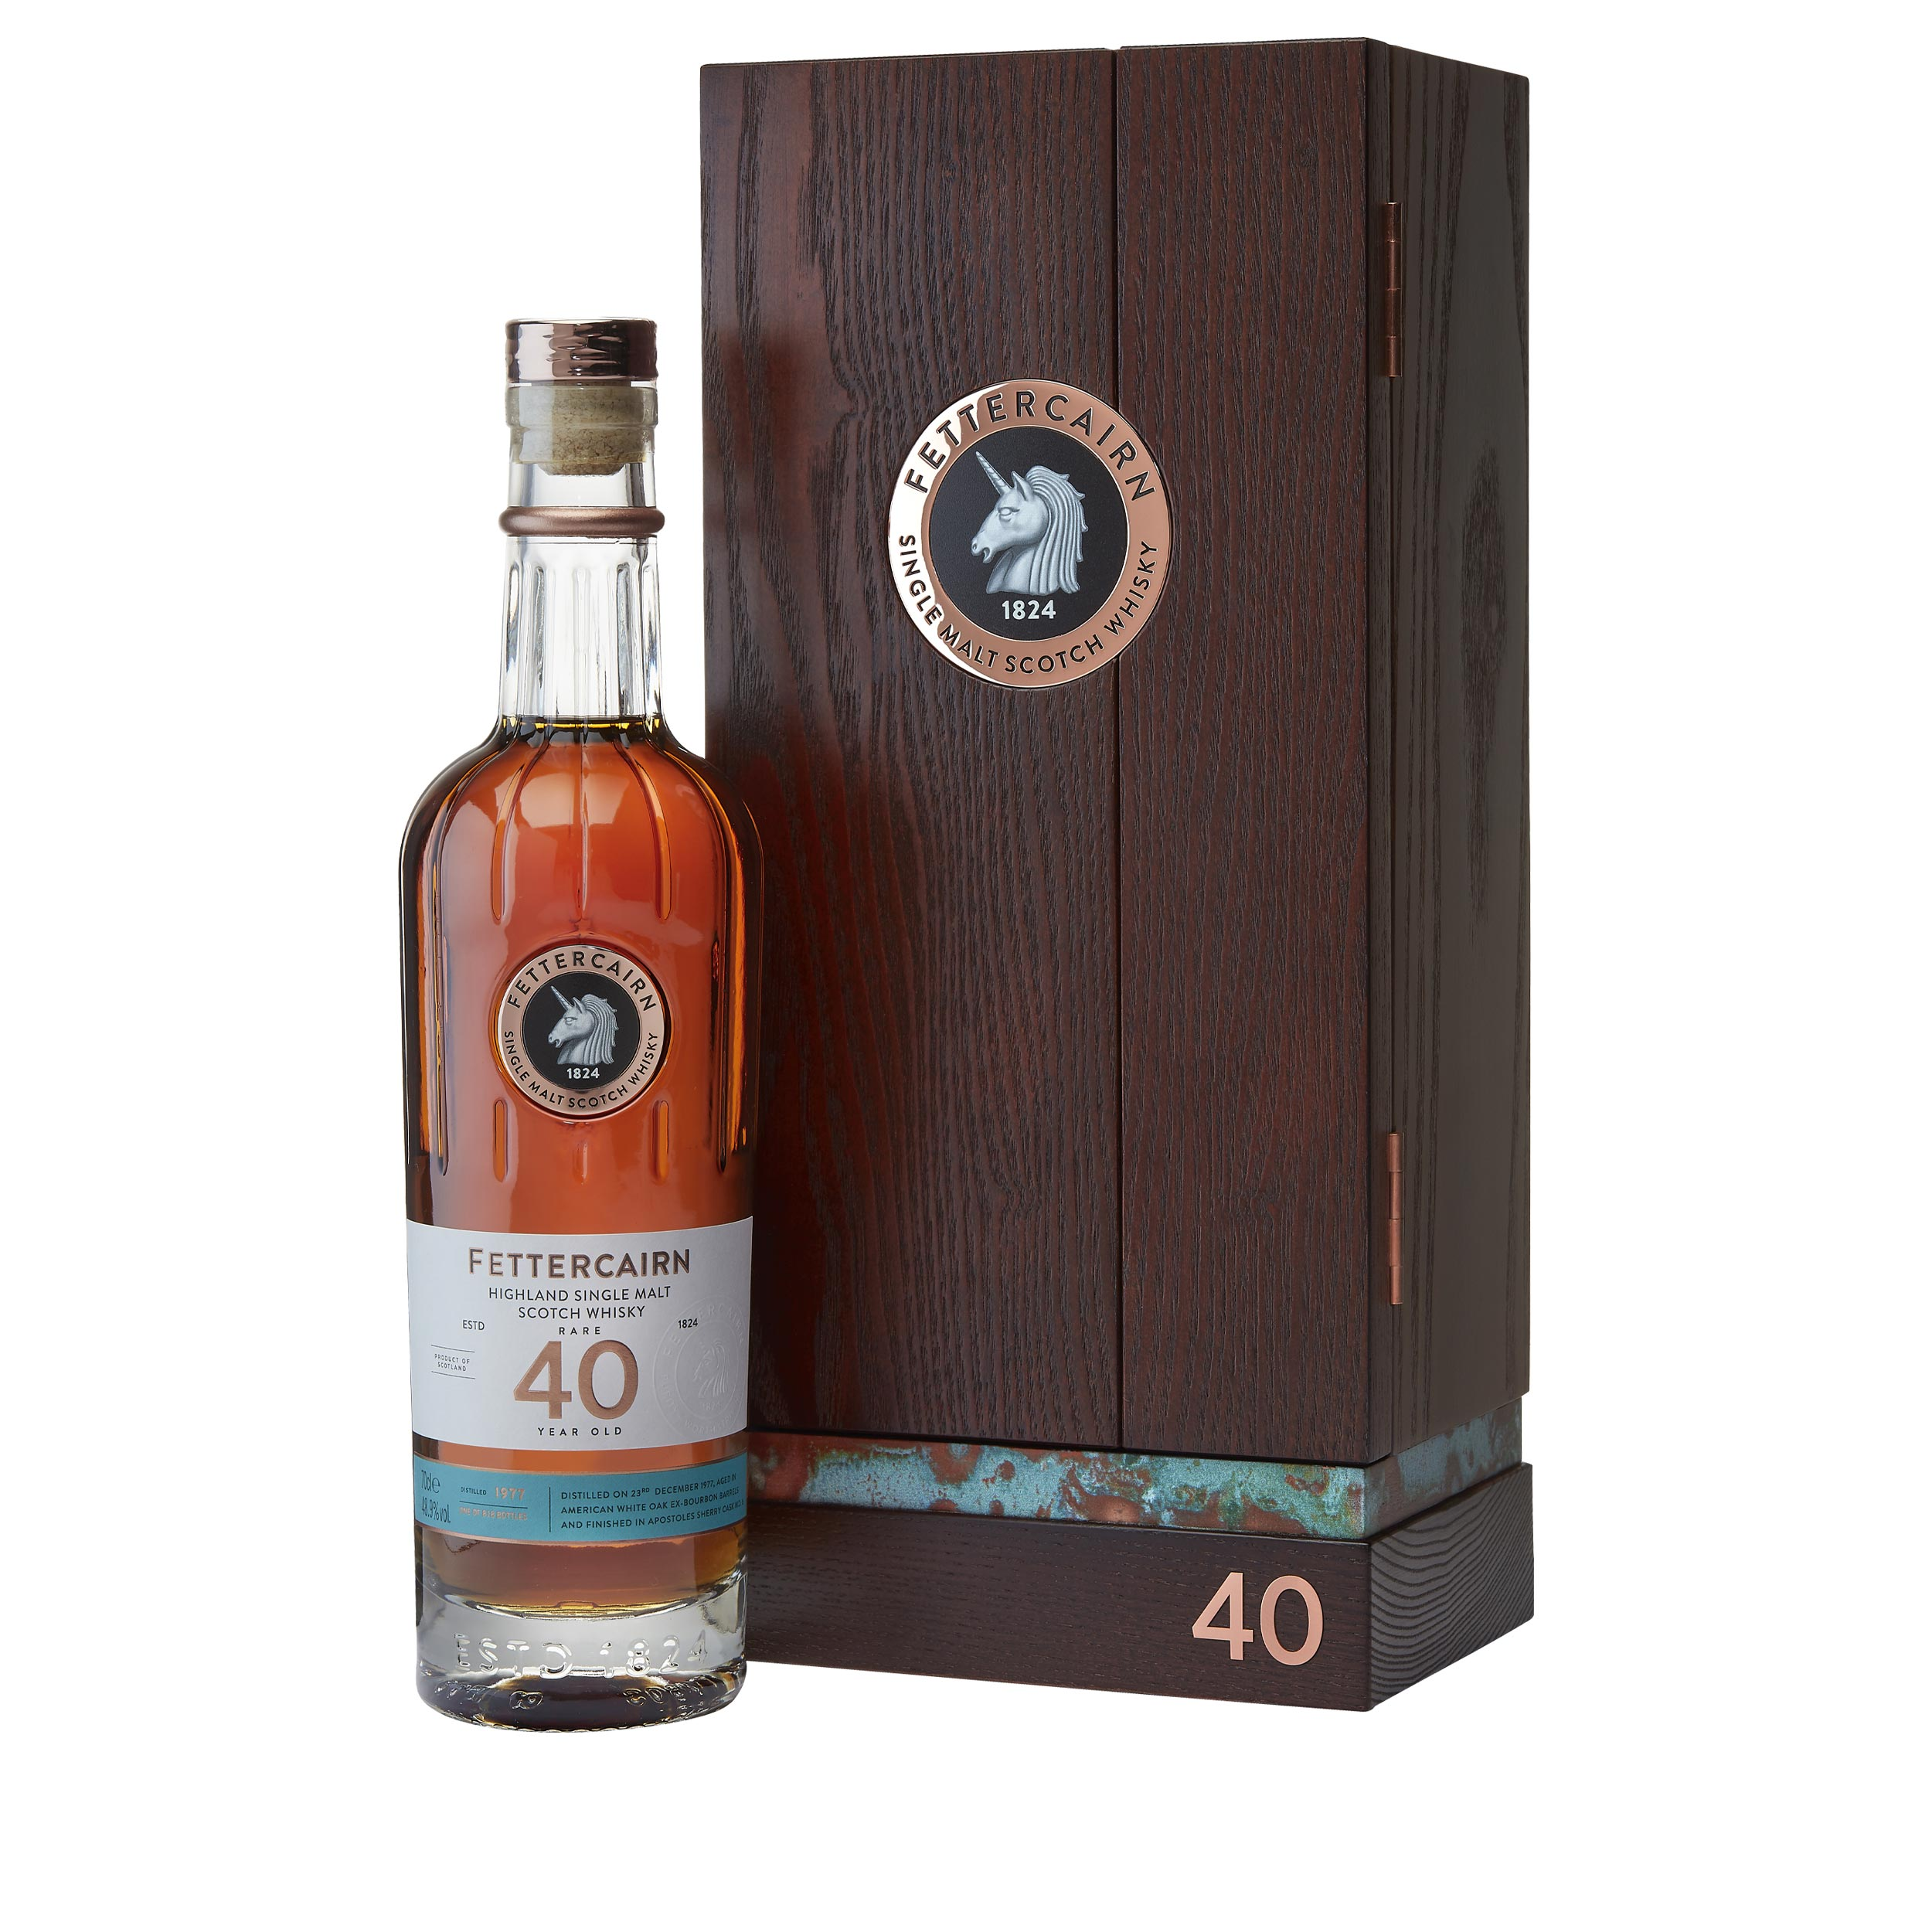 Fettercairn 40 Year Old Limited Edition Highland Single Malt Scotch Whisky 70cl